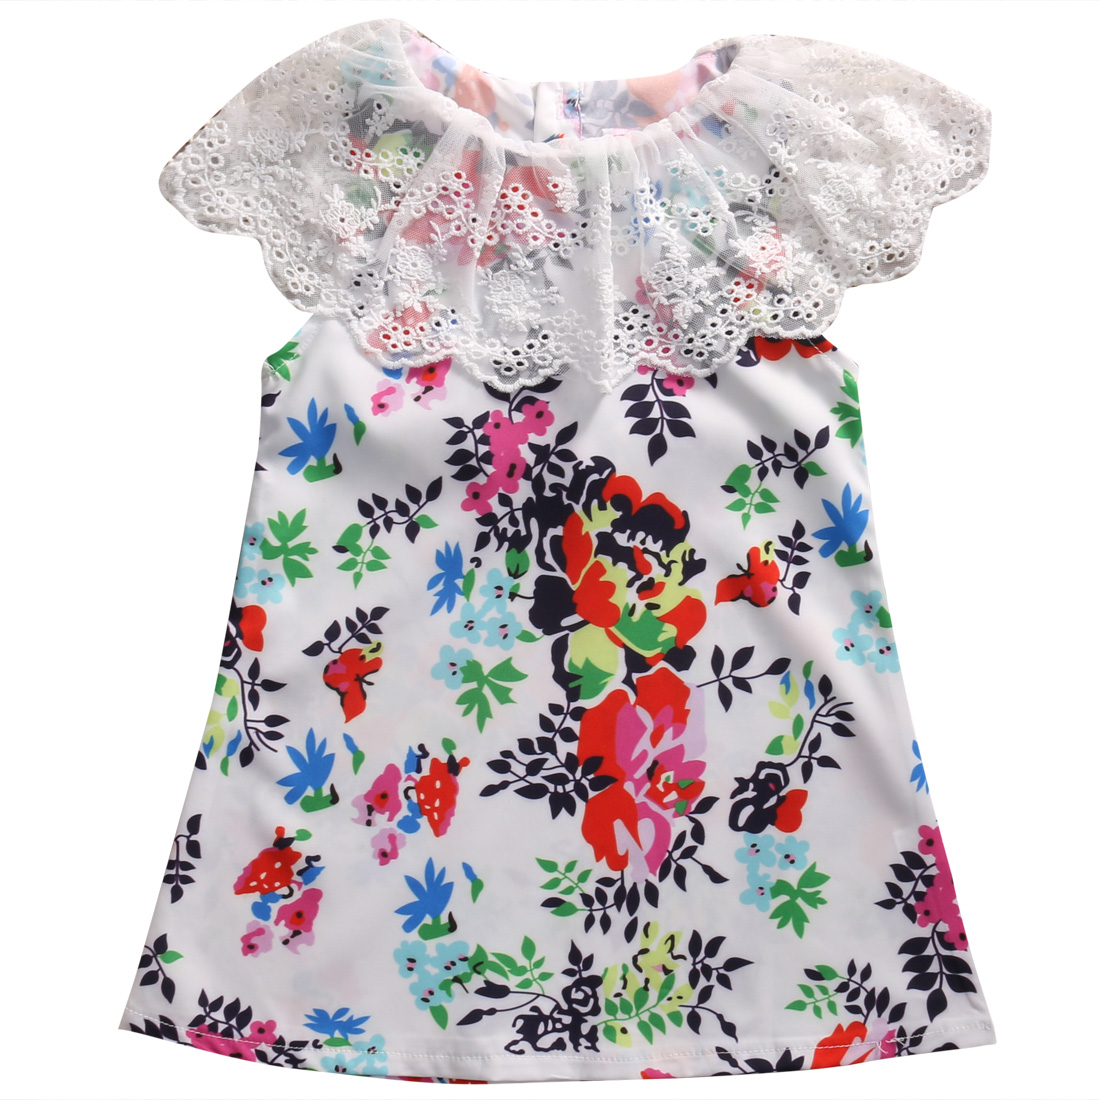 Lovely Nice Baby Kids Girl Lace Floral Dress Princess Party Tutu Dresses Children Girls Summer Clothes 2016 summer baby flower girls lace princess dress children lolita style party tutu dresses girl pink floral dress kids clothes